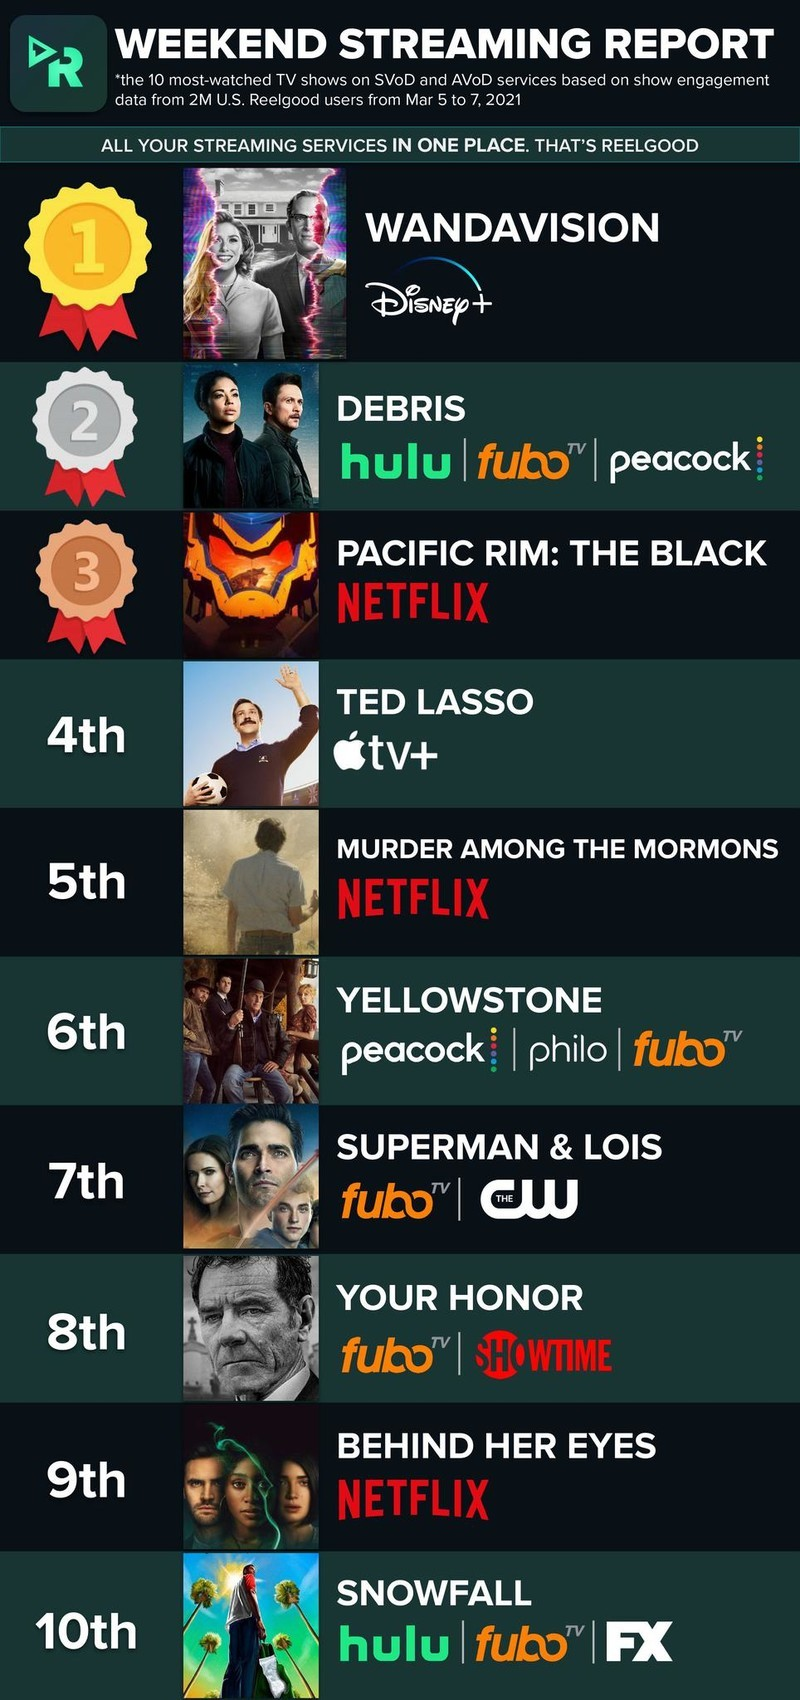 Reelgood Ted Lasso Fourth Most Watched March